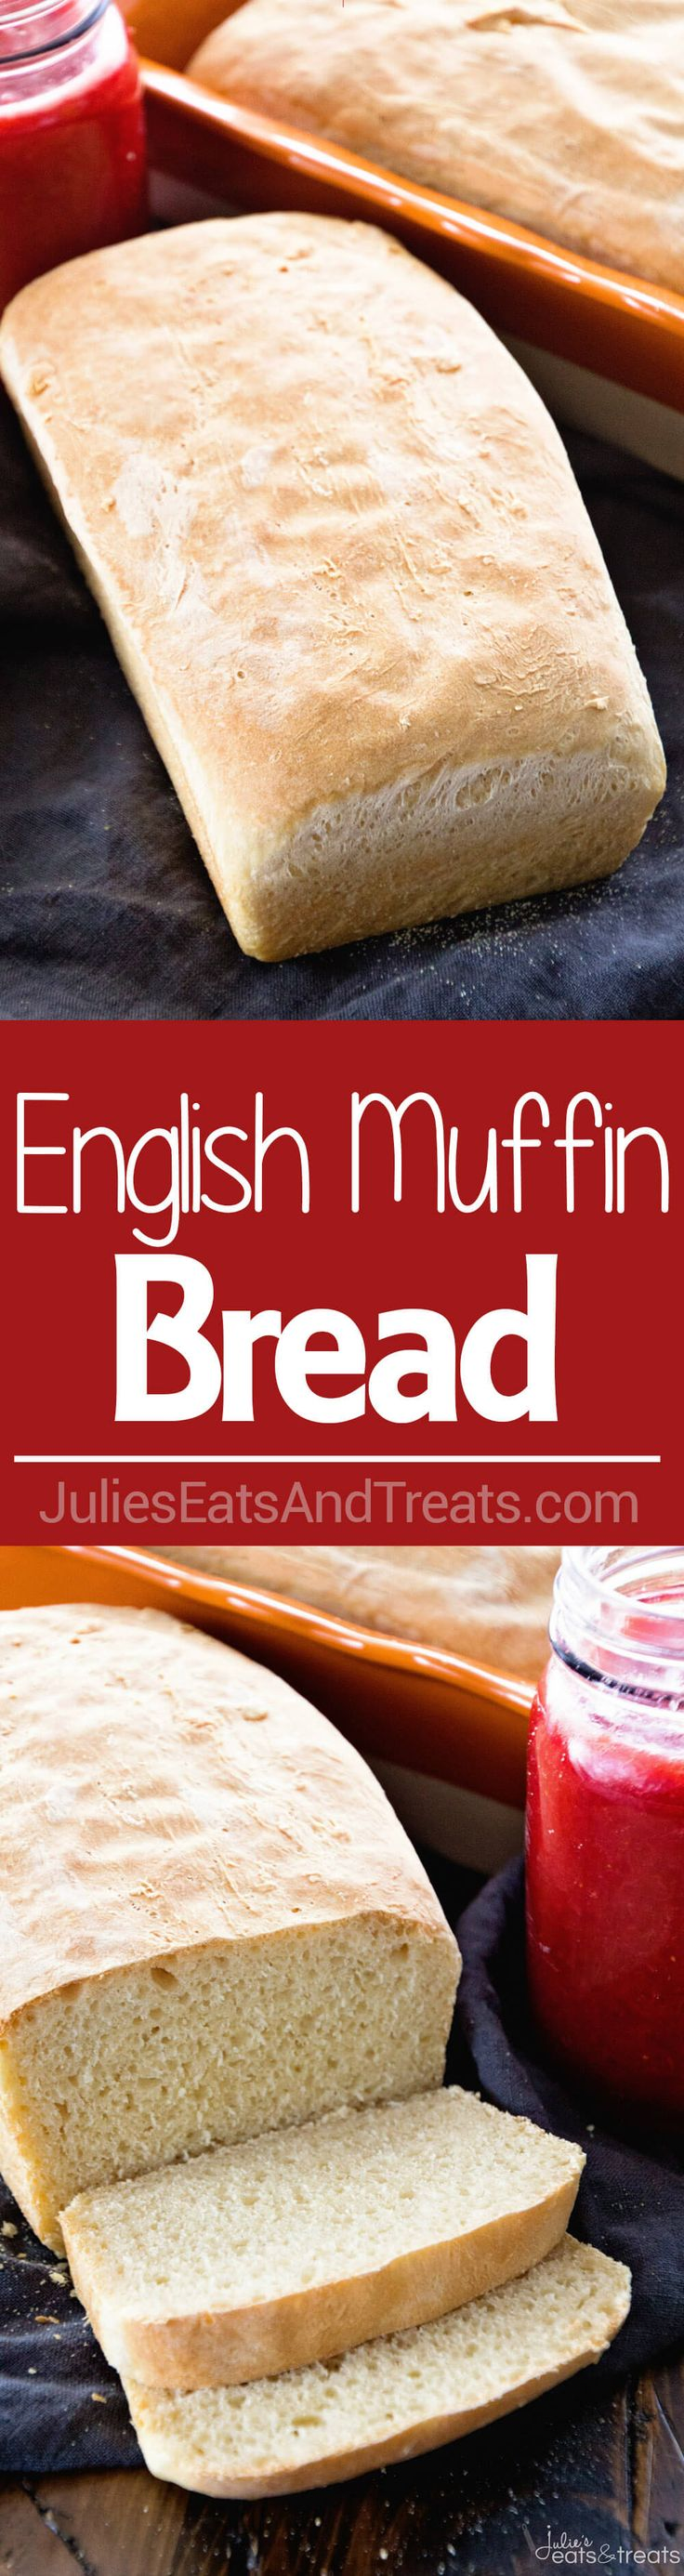 English Muffin Bread ~ Perfect Bread for Toasting! Homemade Bread that has the Same Texture and Flavor as Your Favorite English Muffins via @julieseats